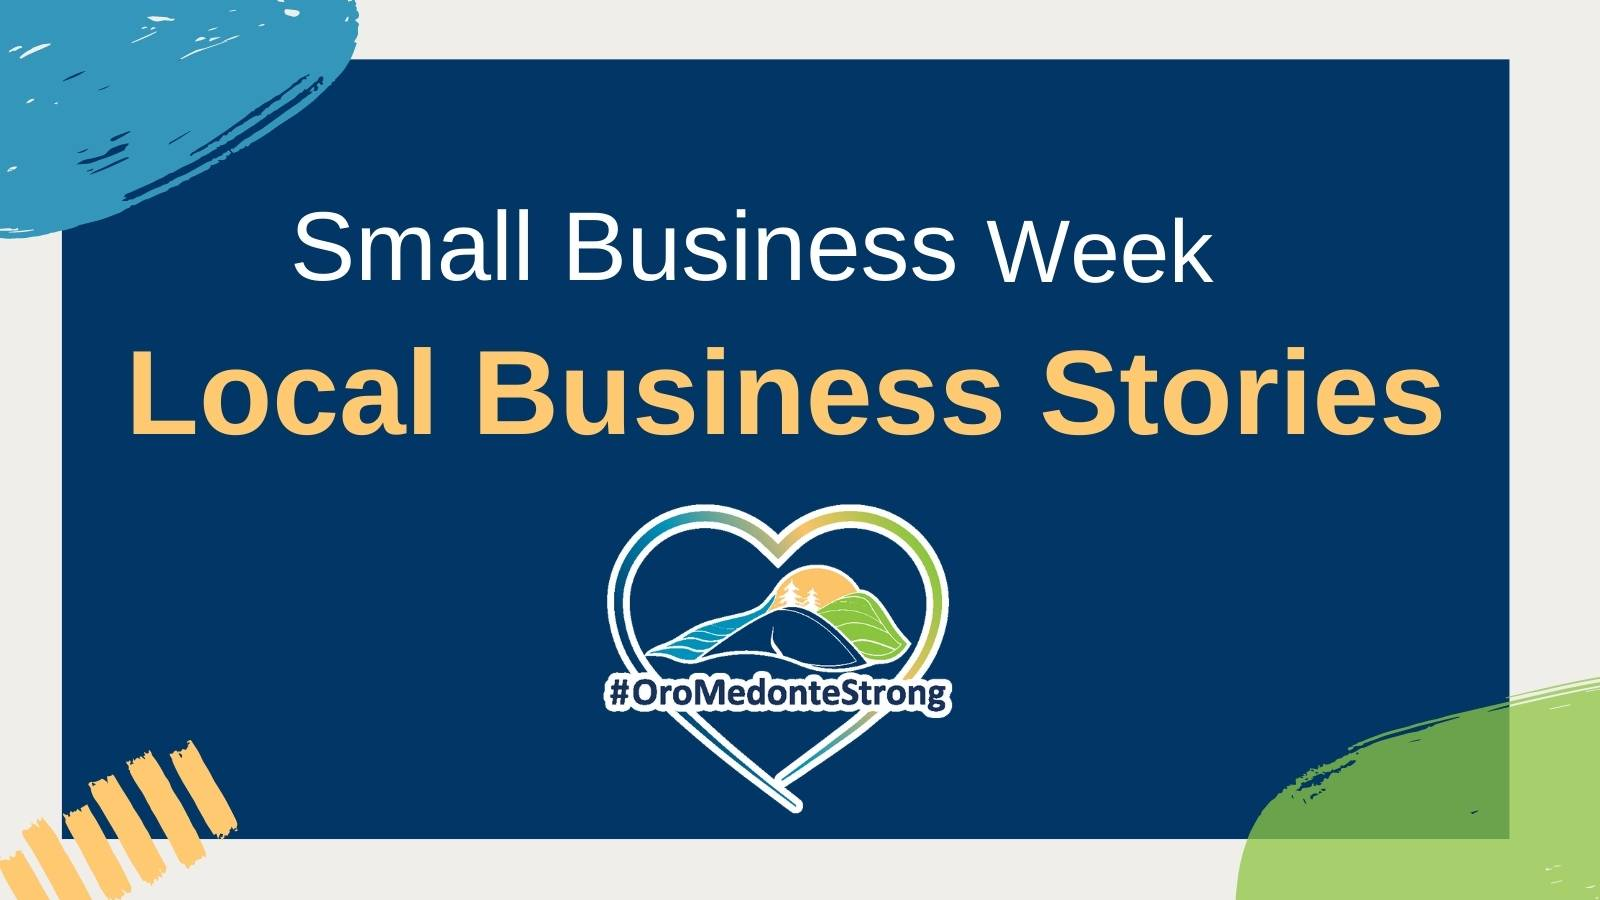 Small Business Week Local Business Stories.jpg